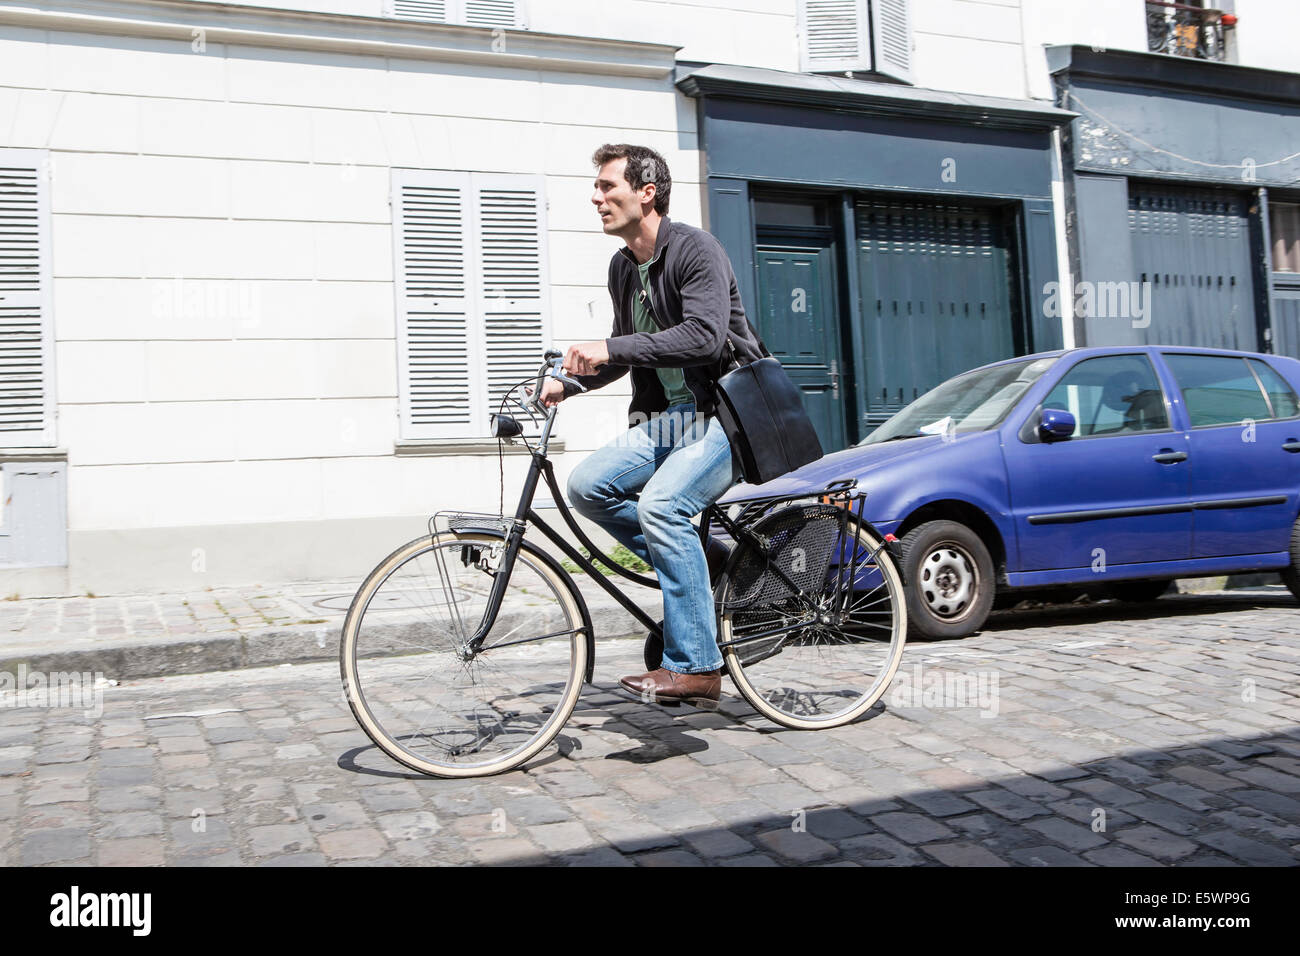 Mid adult man speeding down cobbled city street on bicycle - Stock Image